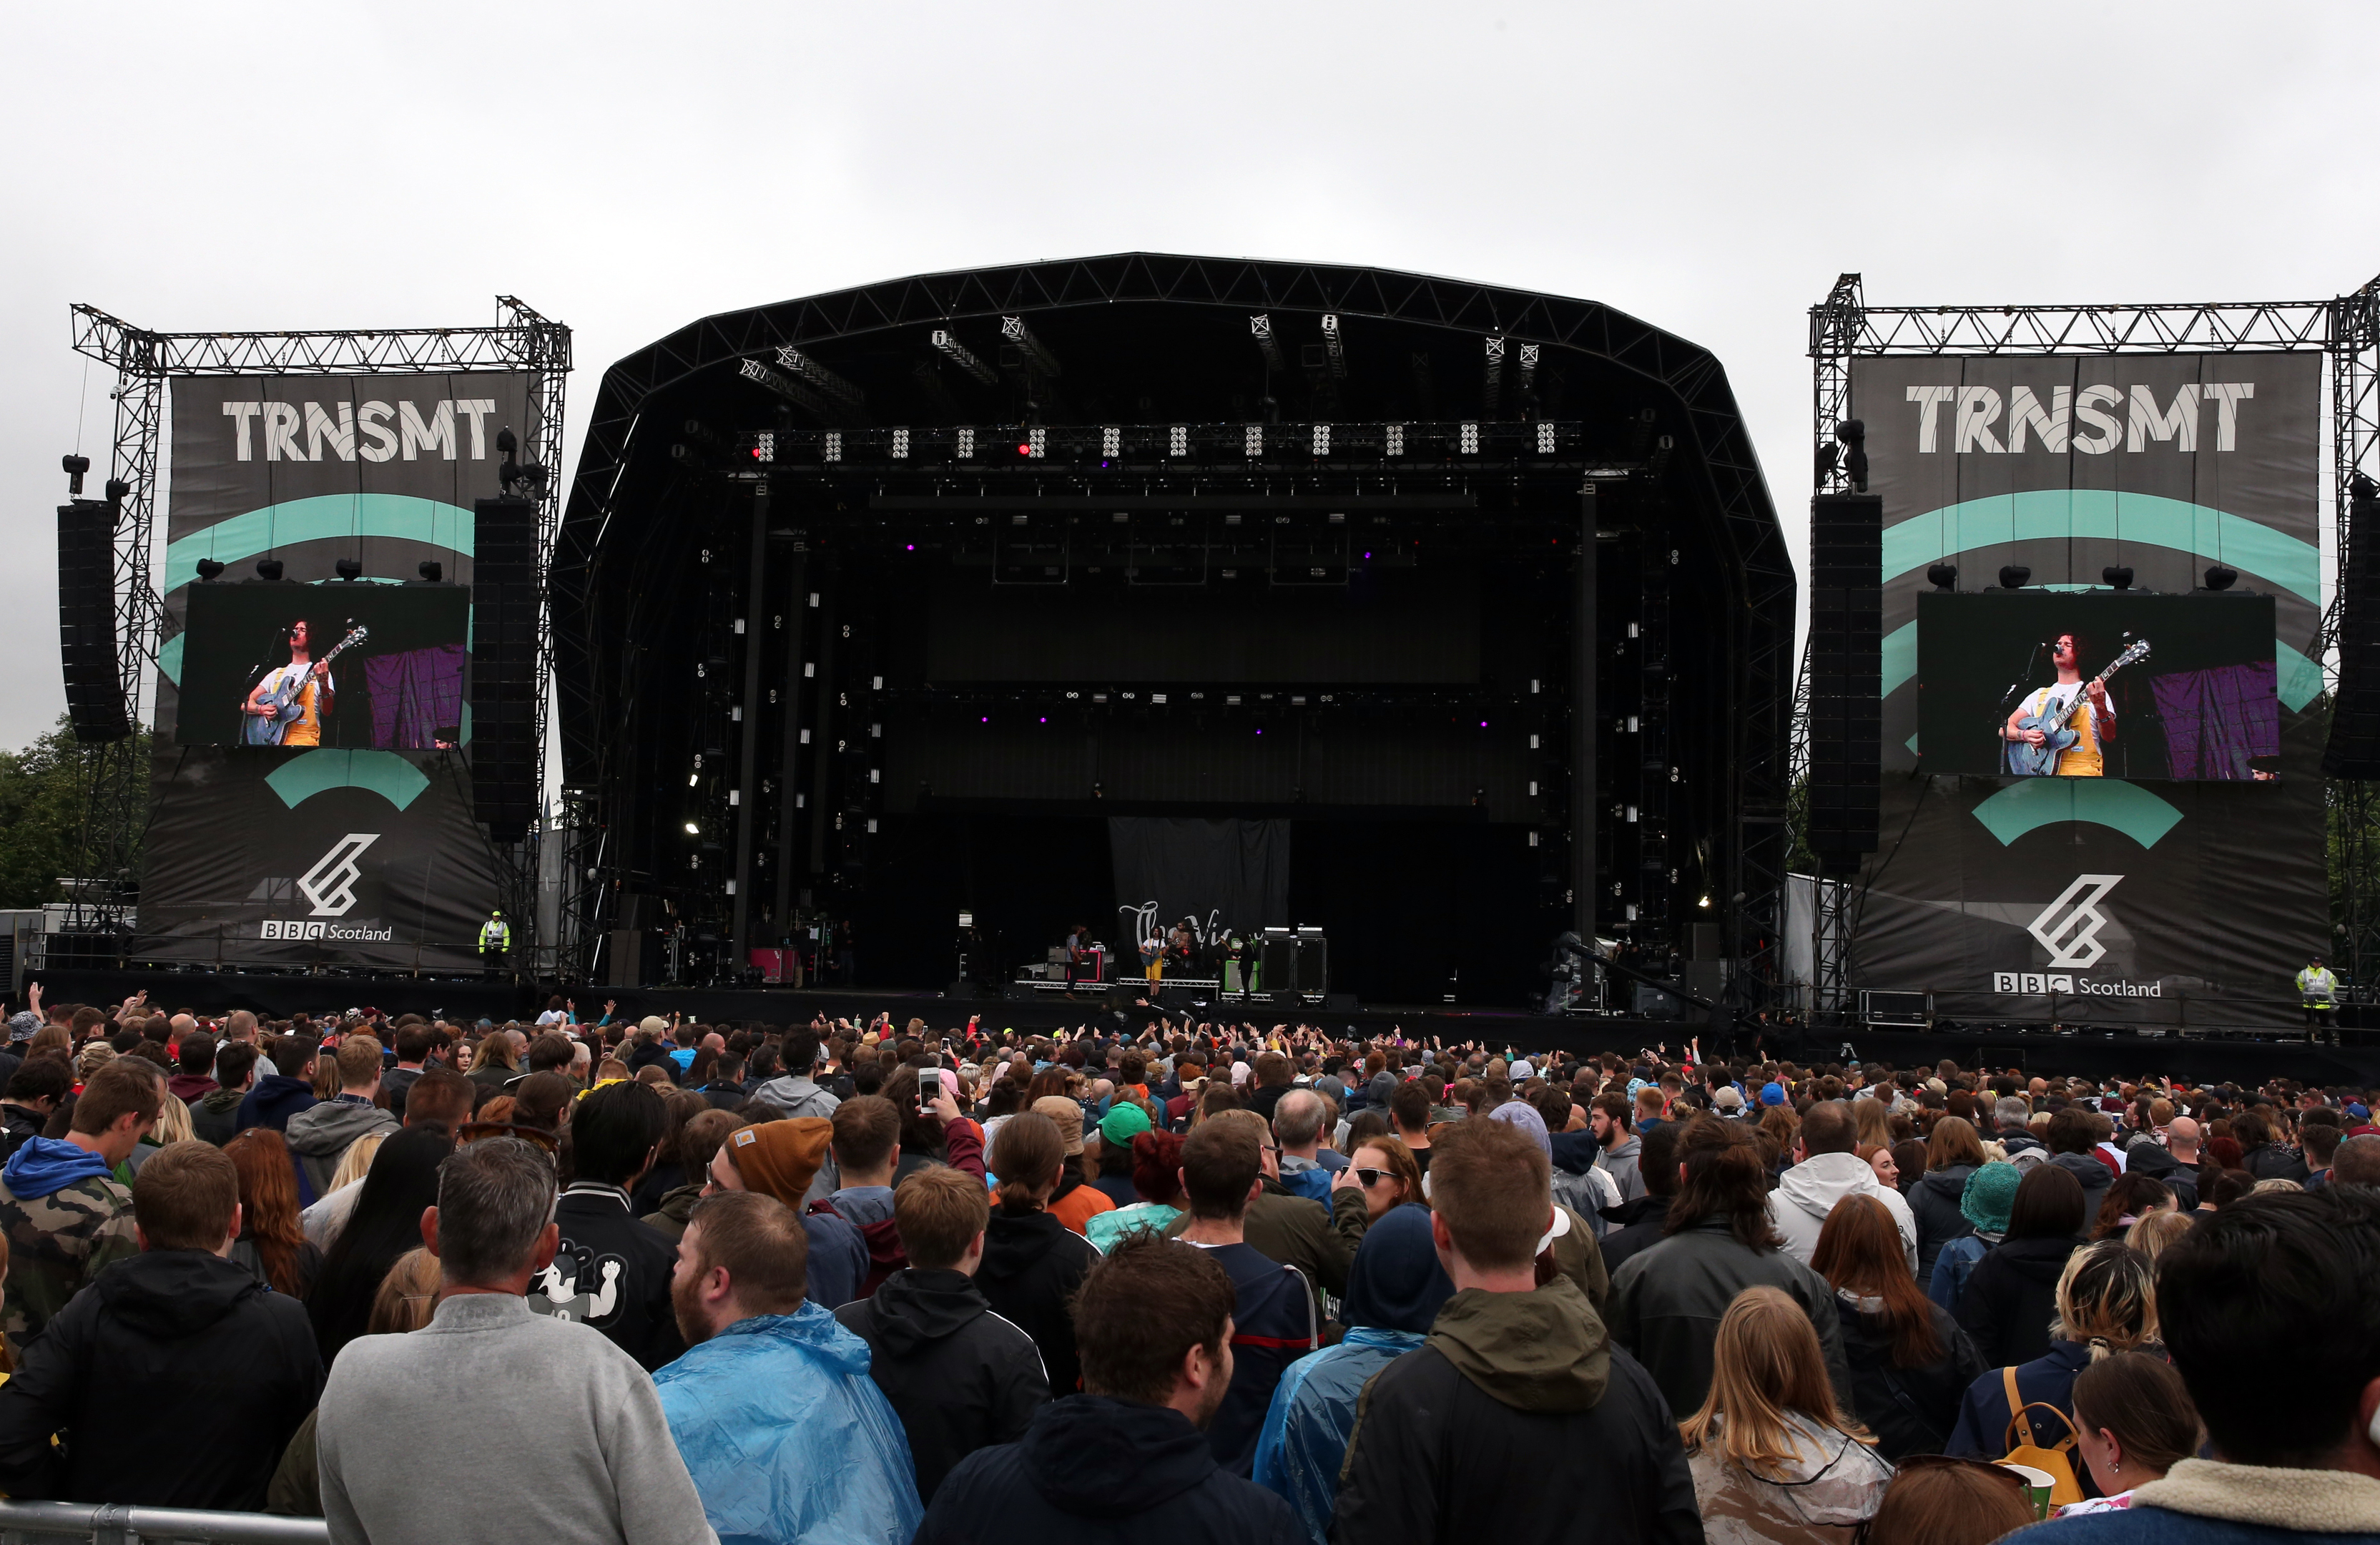 The Main Stage at the TRNSMT festival.